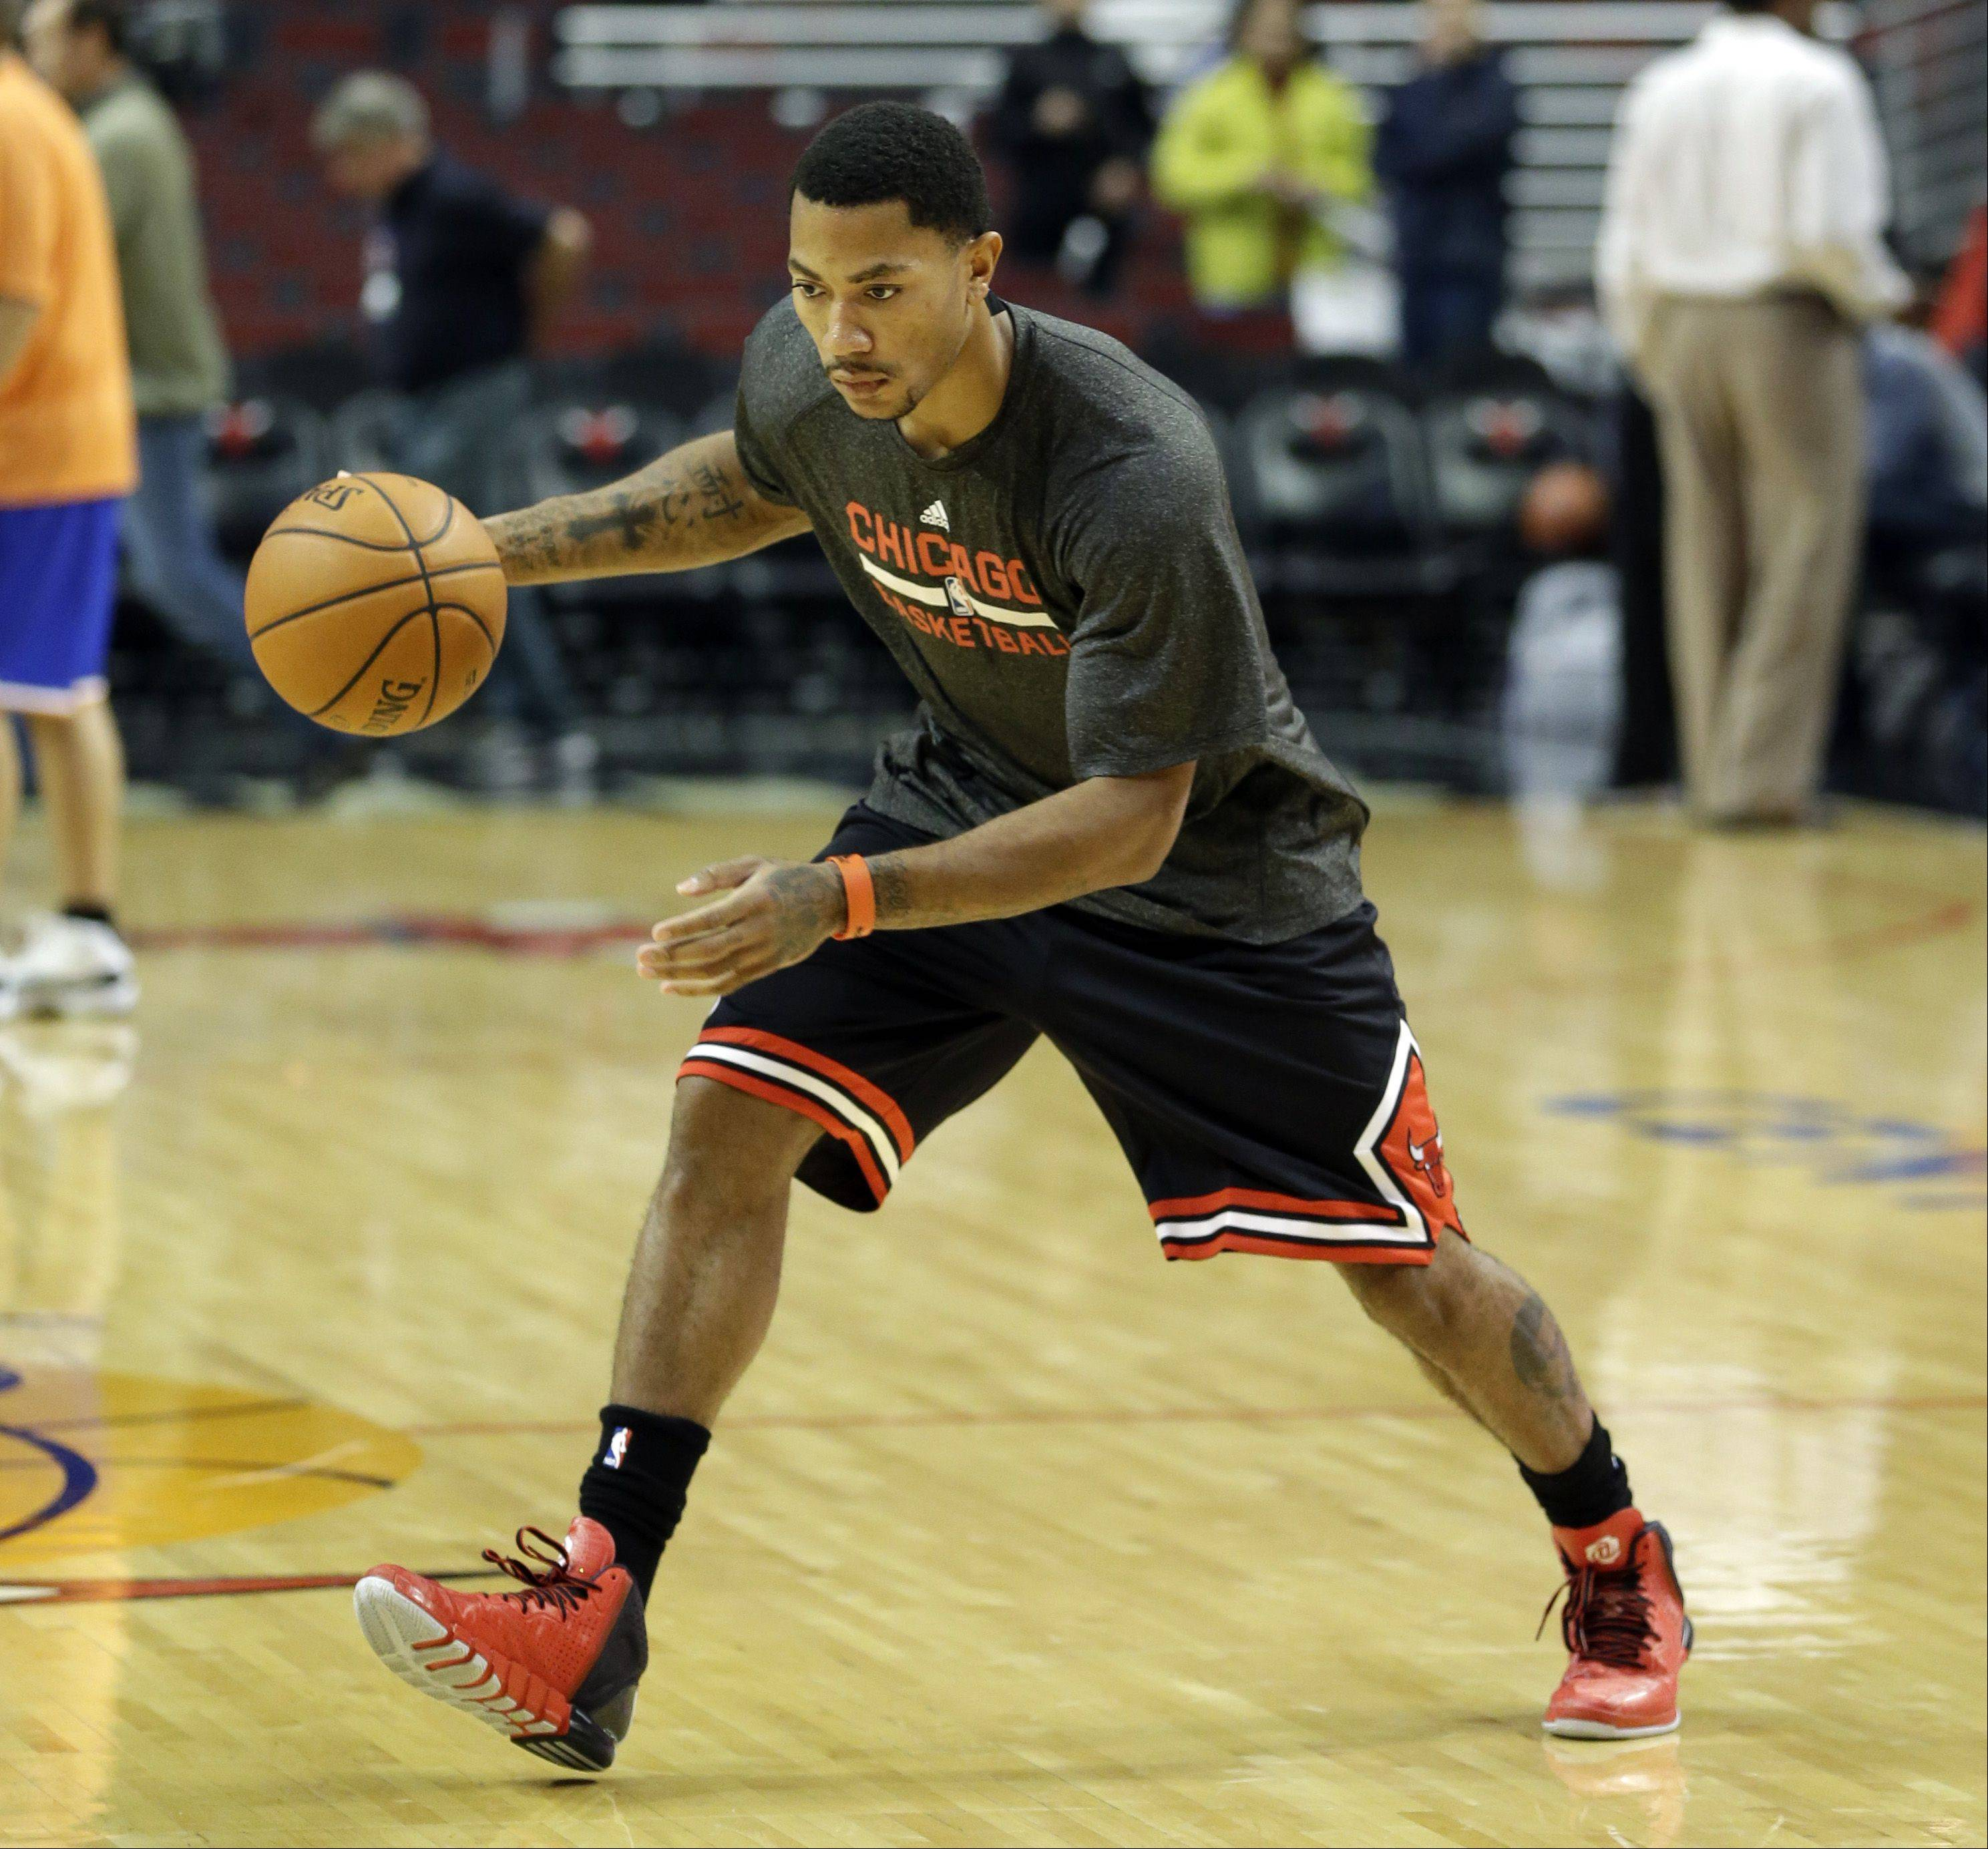 Bulls guard Derrick Rose warms up before Thursday's game against the New York Knicks at United Center.